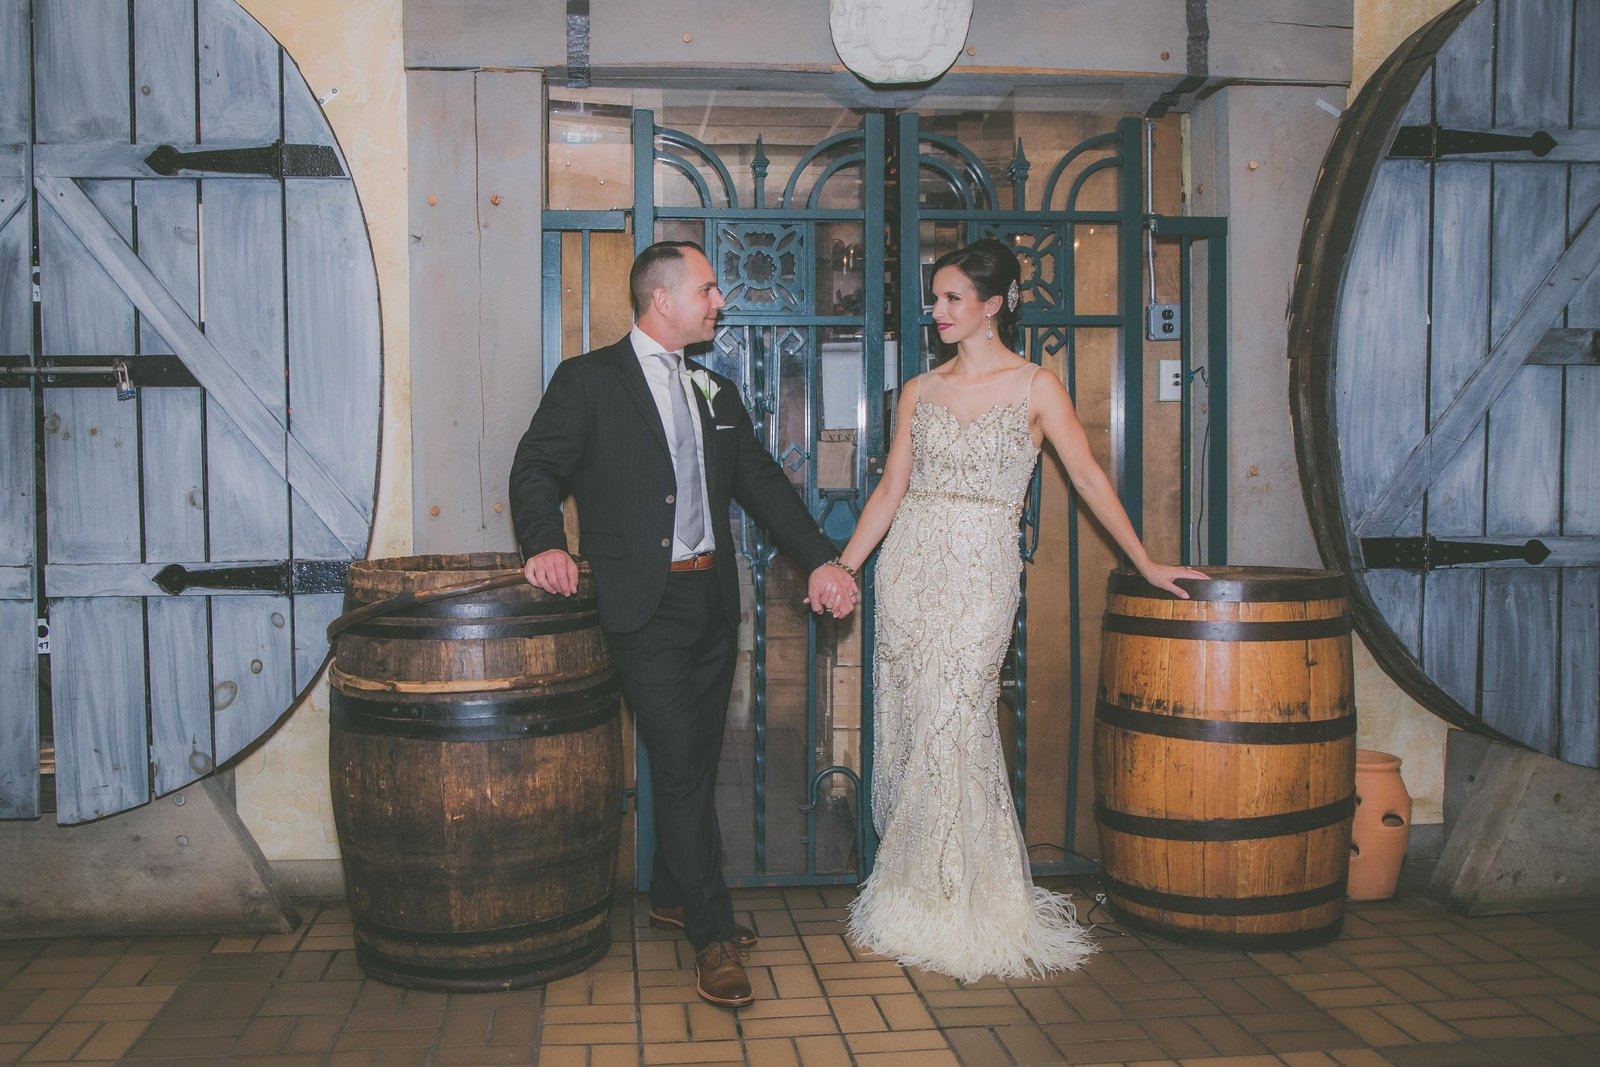 Bride and groom look and smile at each other in winery basement.